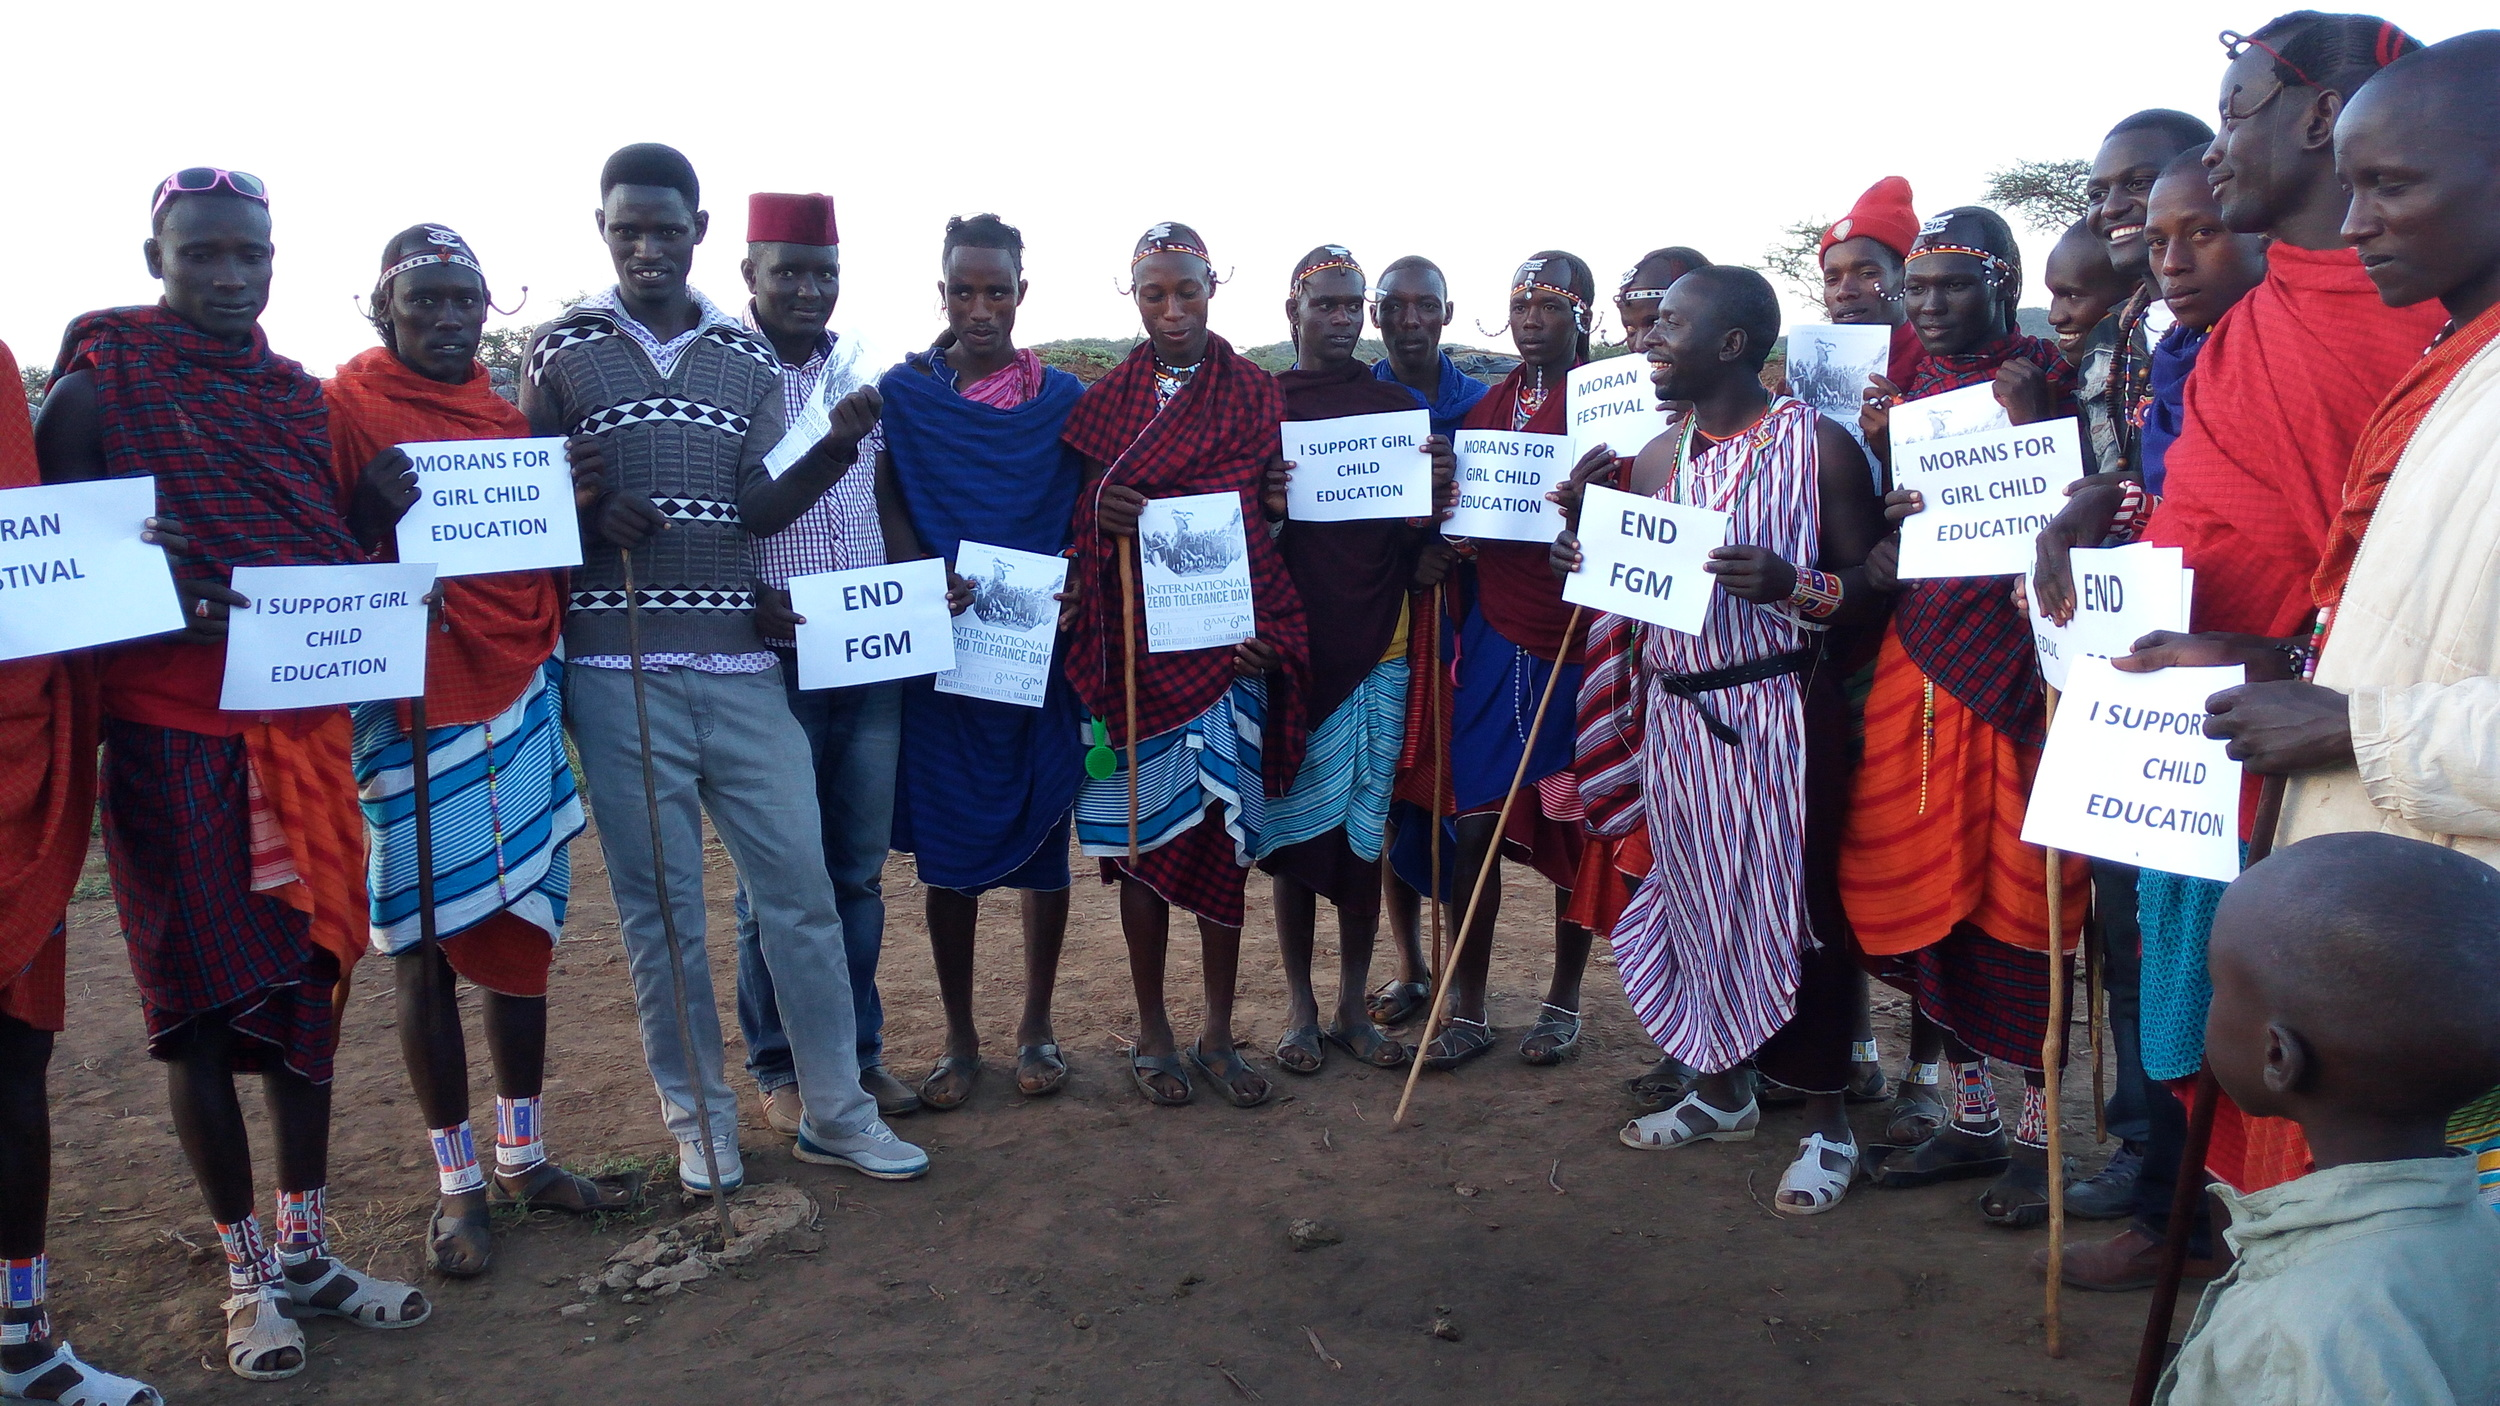 Advocacy work against FGM with pastoralist community in Kenya